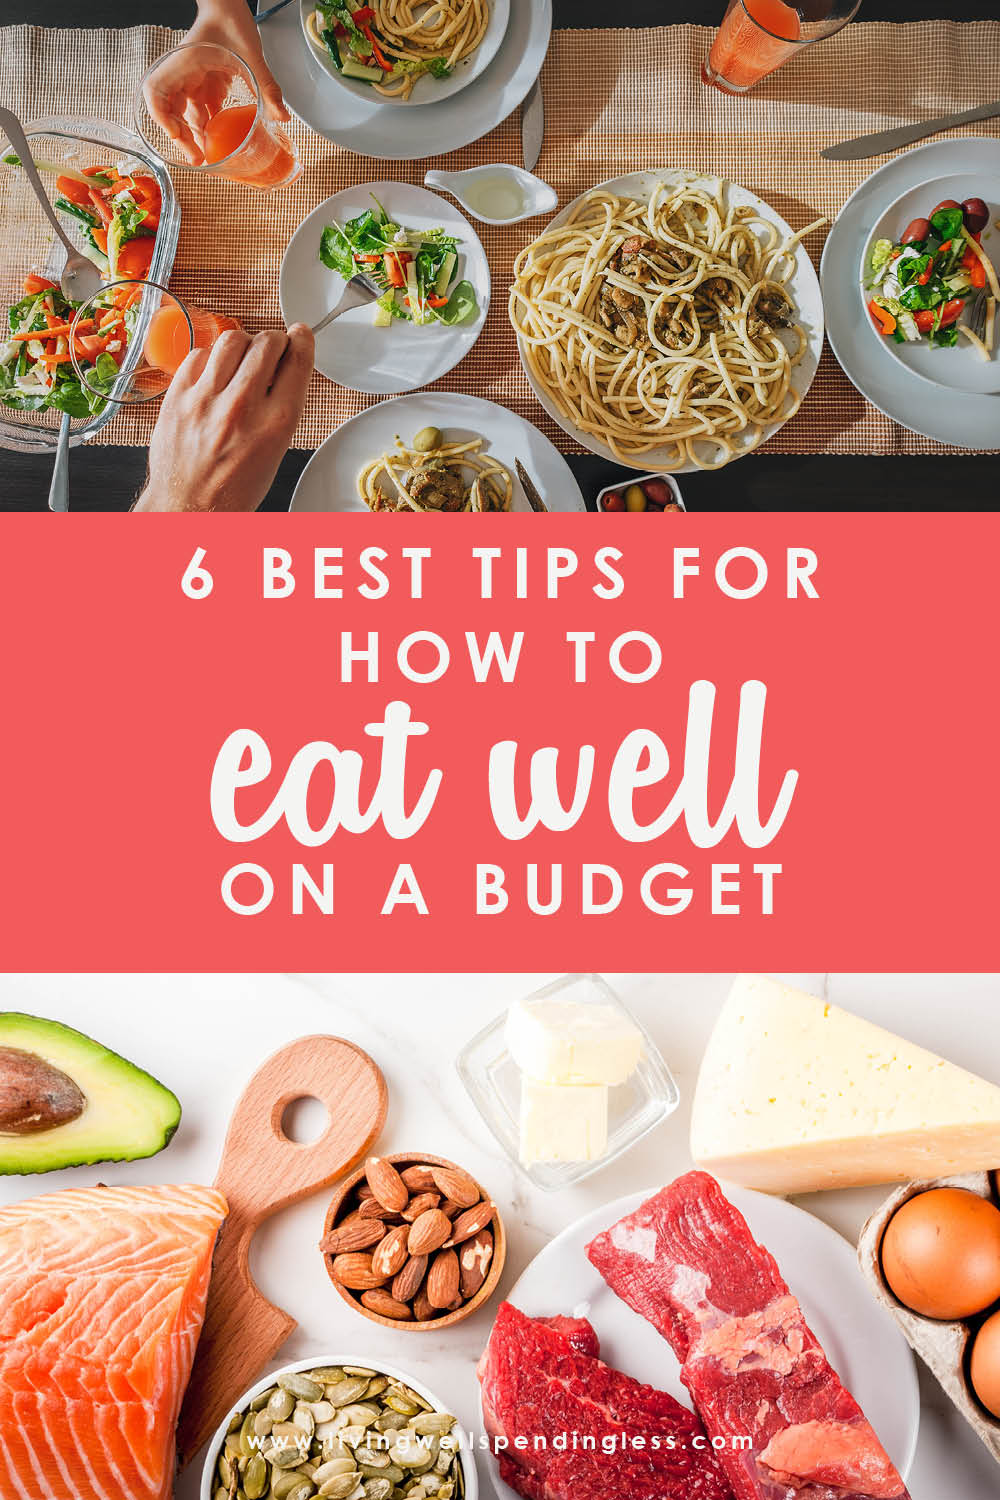 Think eating healthy has to cost a fortune? These tips for how to eat well on a budget will shed some light on nutritious meals the whole family will love! #healthfuleating #eatingonabudget #mealsavingtips #moneysavingtips #grocery #affordableeating #grocerymoneysavingtips #eatwell #grocerybudgettips